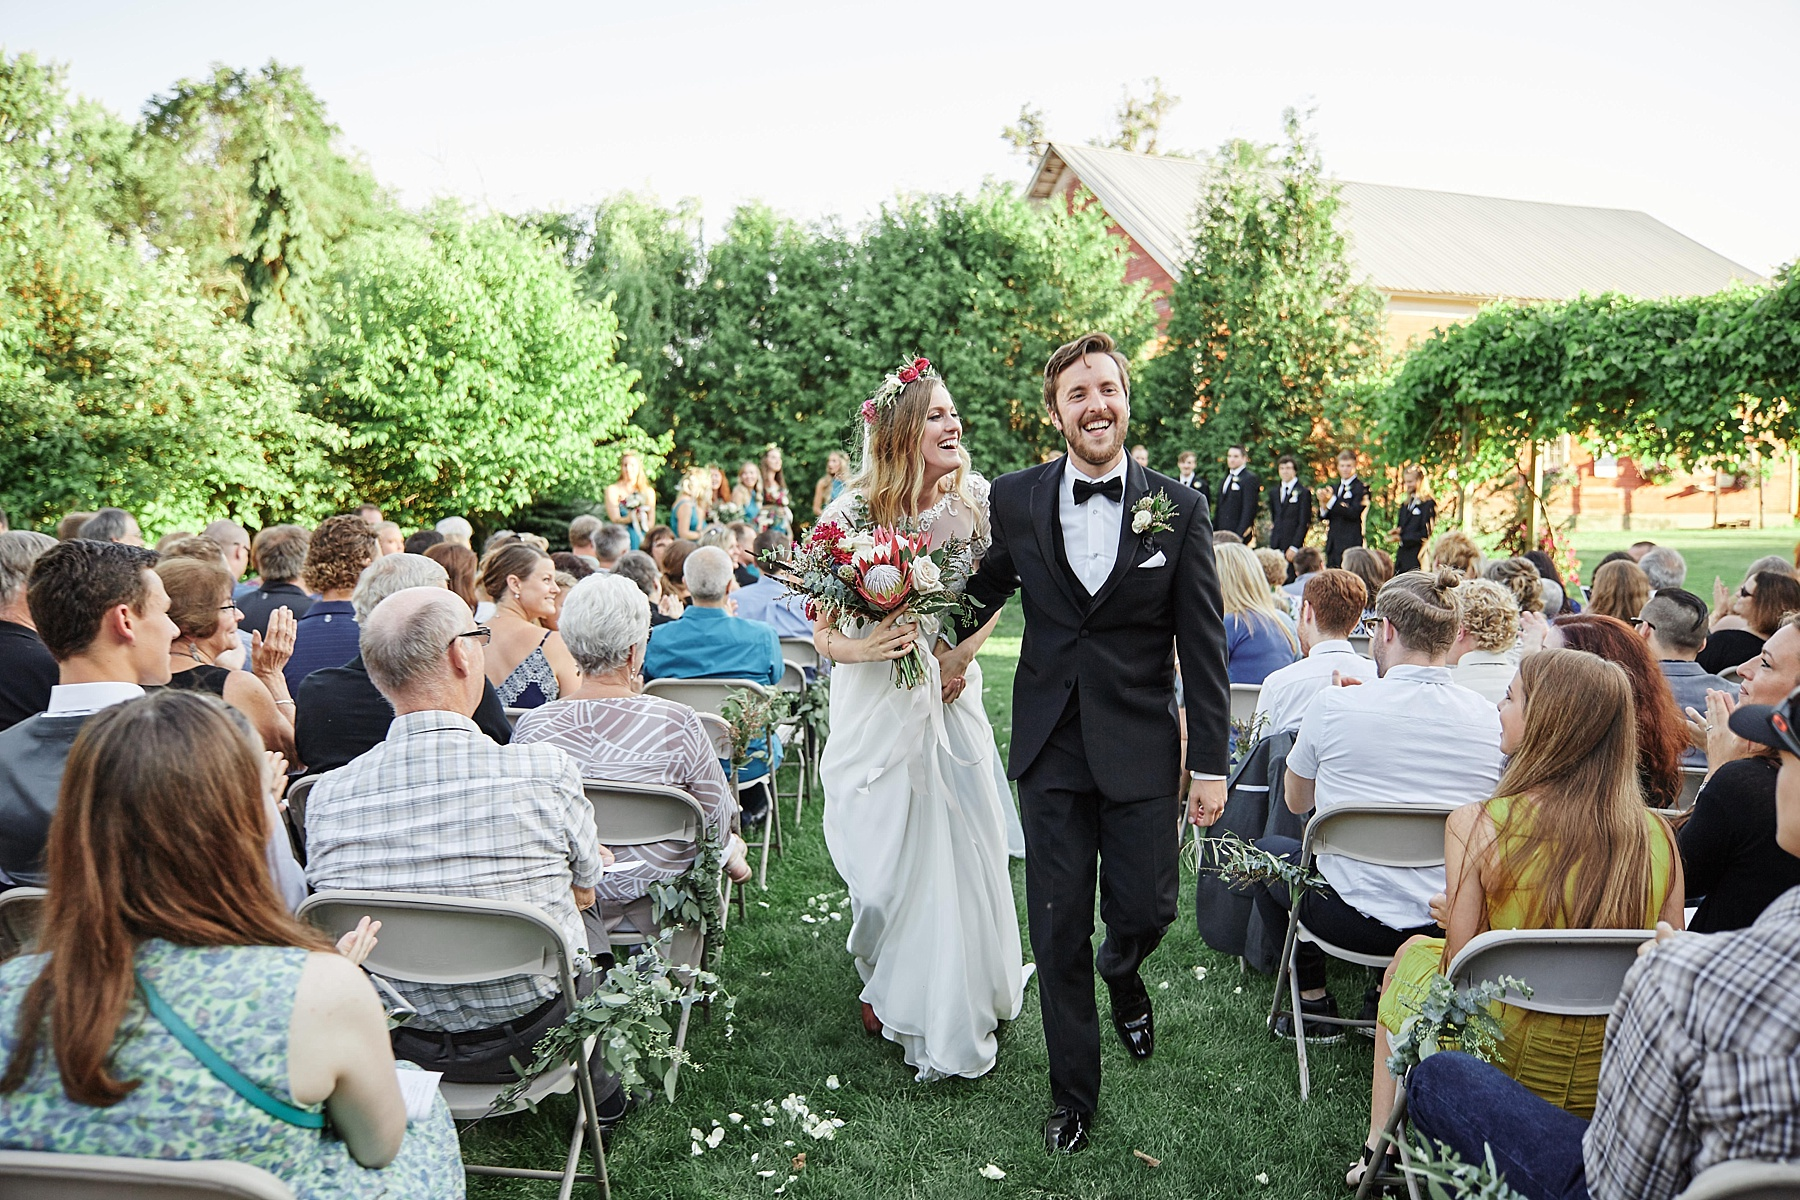 Fairhaven-Farm-South-Haven-Minnesota-Barn-Outdoor-Wedding-Josh-Kailey_1009.jpg